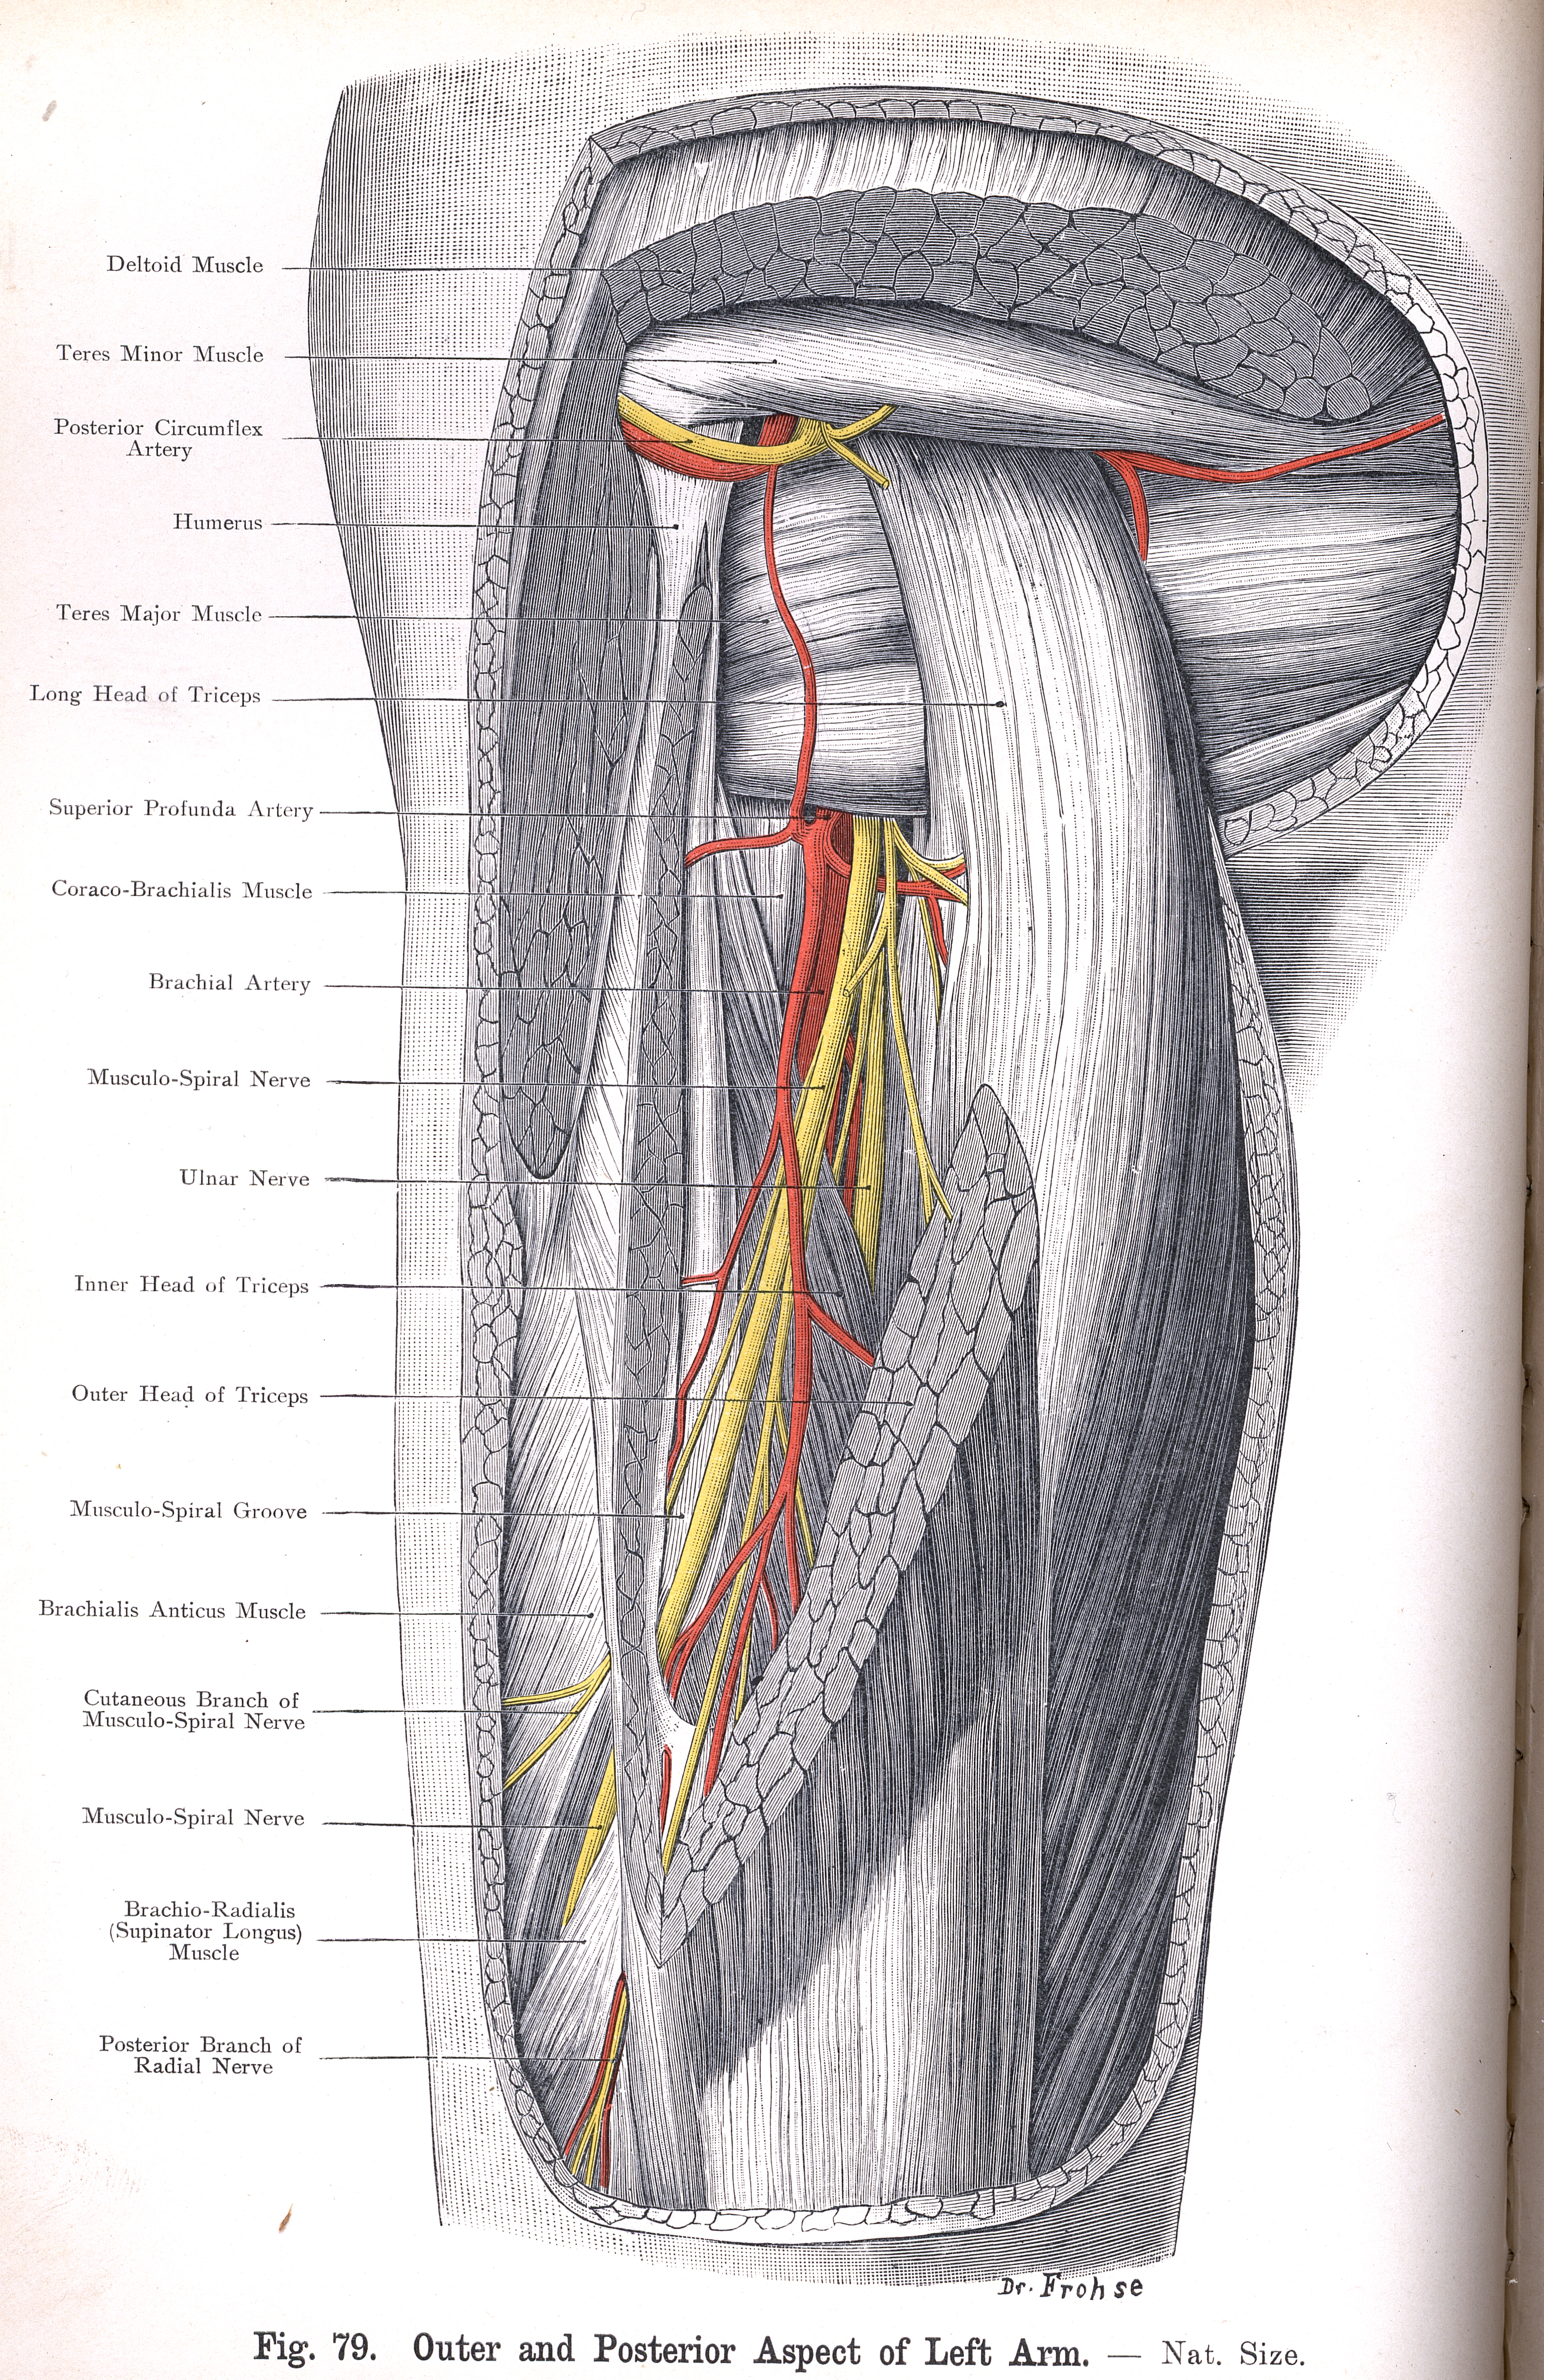 79. Outer and Posterior Aspect of Left Arm